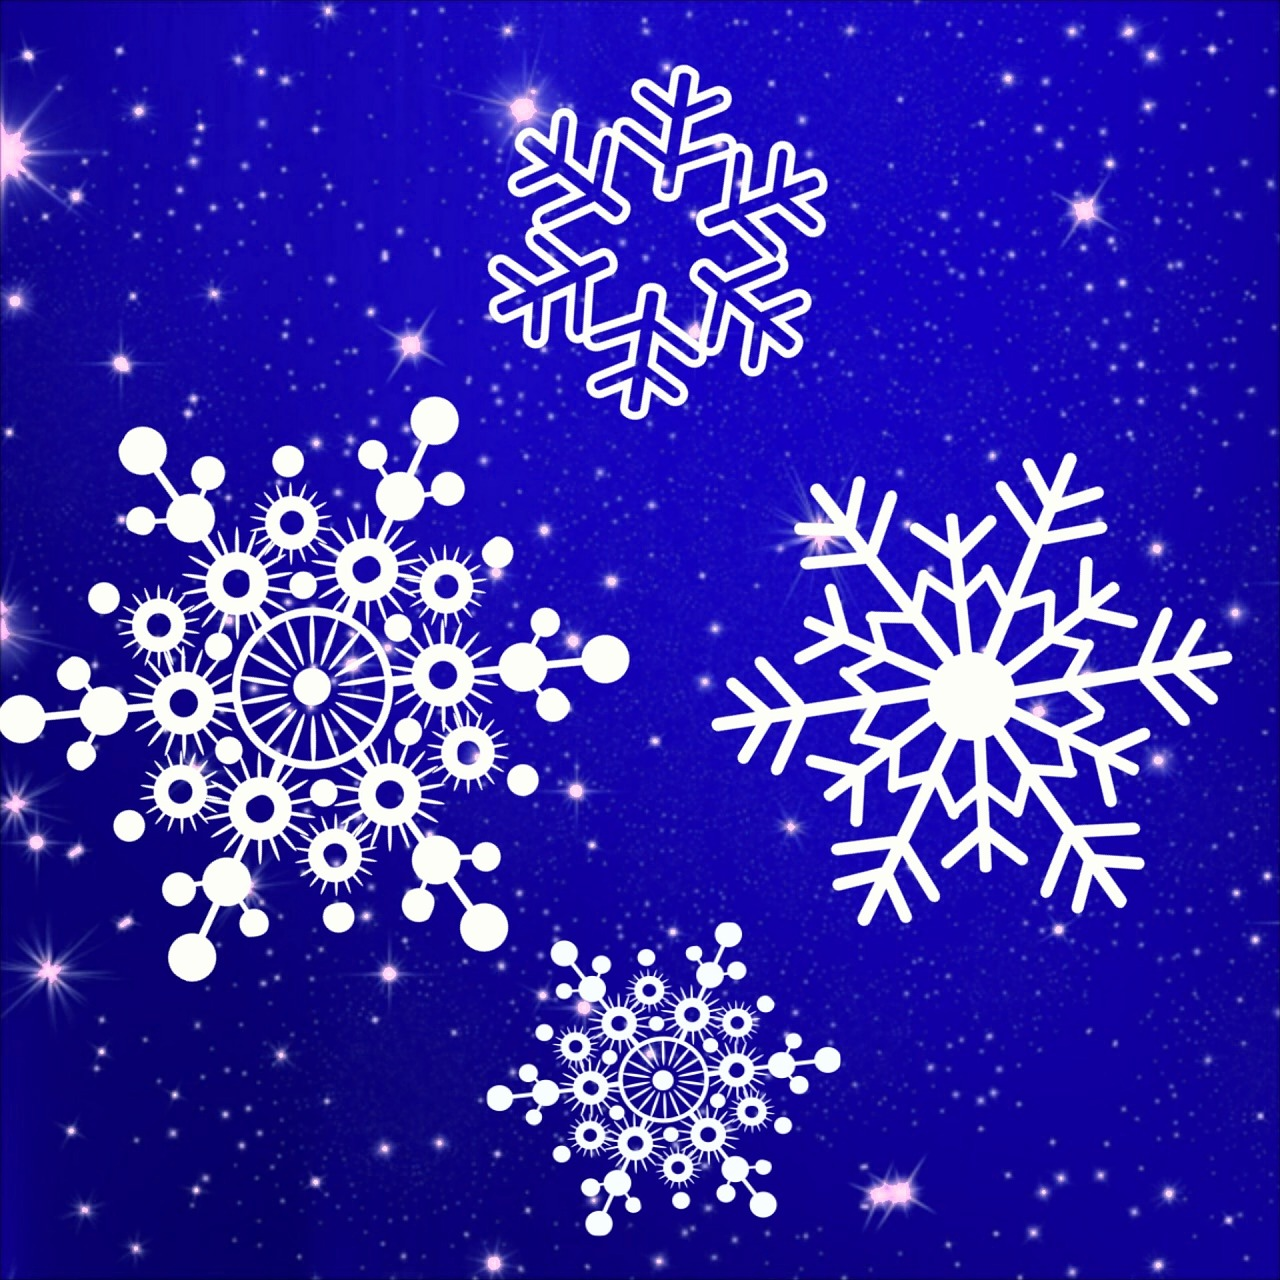 snowflakes,flake,snow,cold,frost,winter,christmas,background,free pictures, free photos, free images, royalty free, free illustrations, public domain